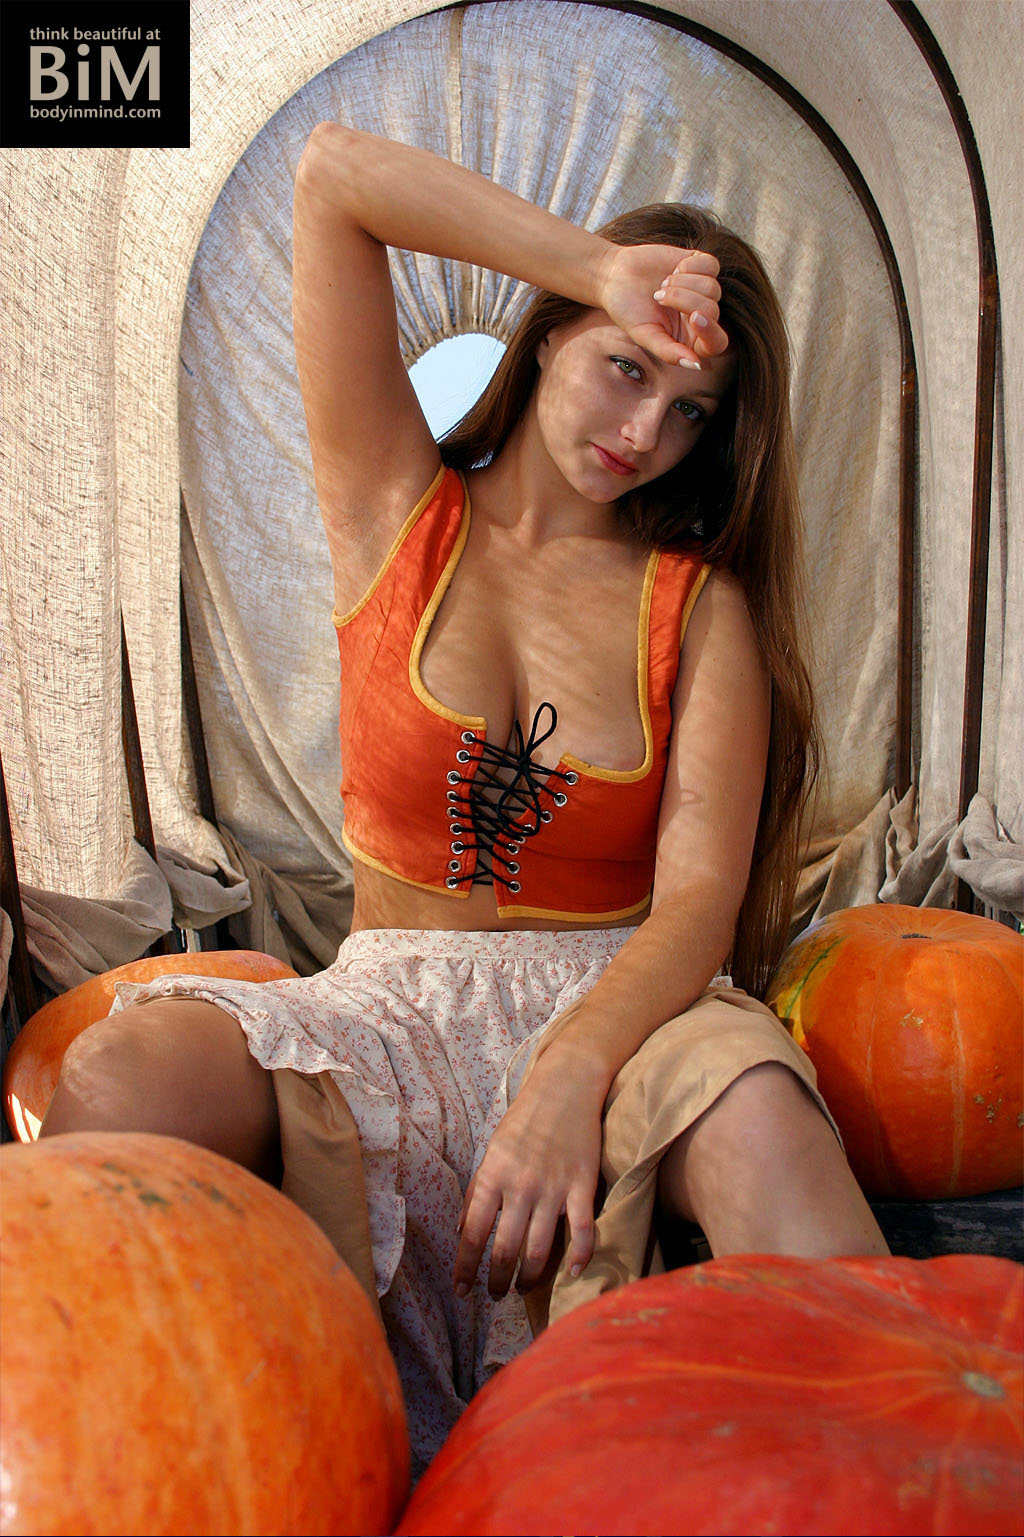 Marina Big Tits Appear in the Pumpkin Patch for Body in Mind